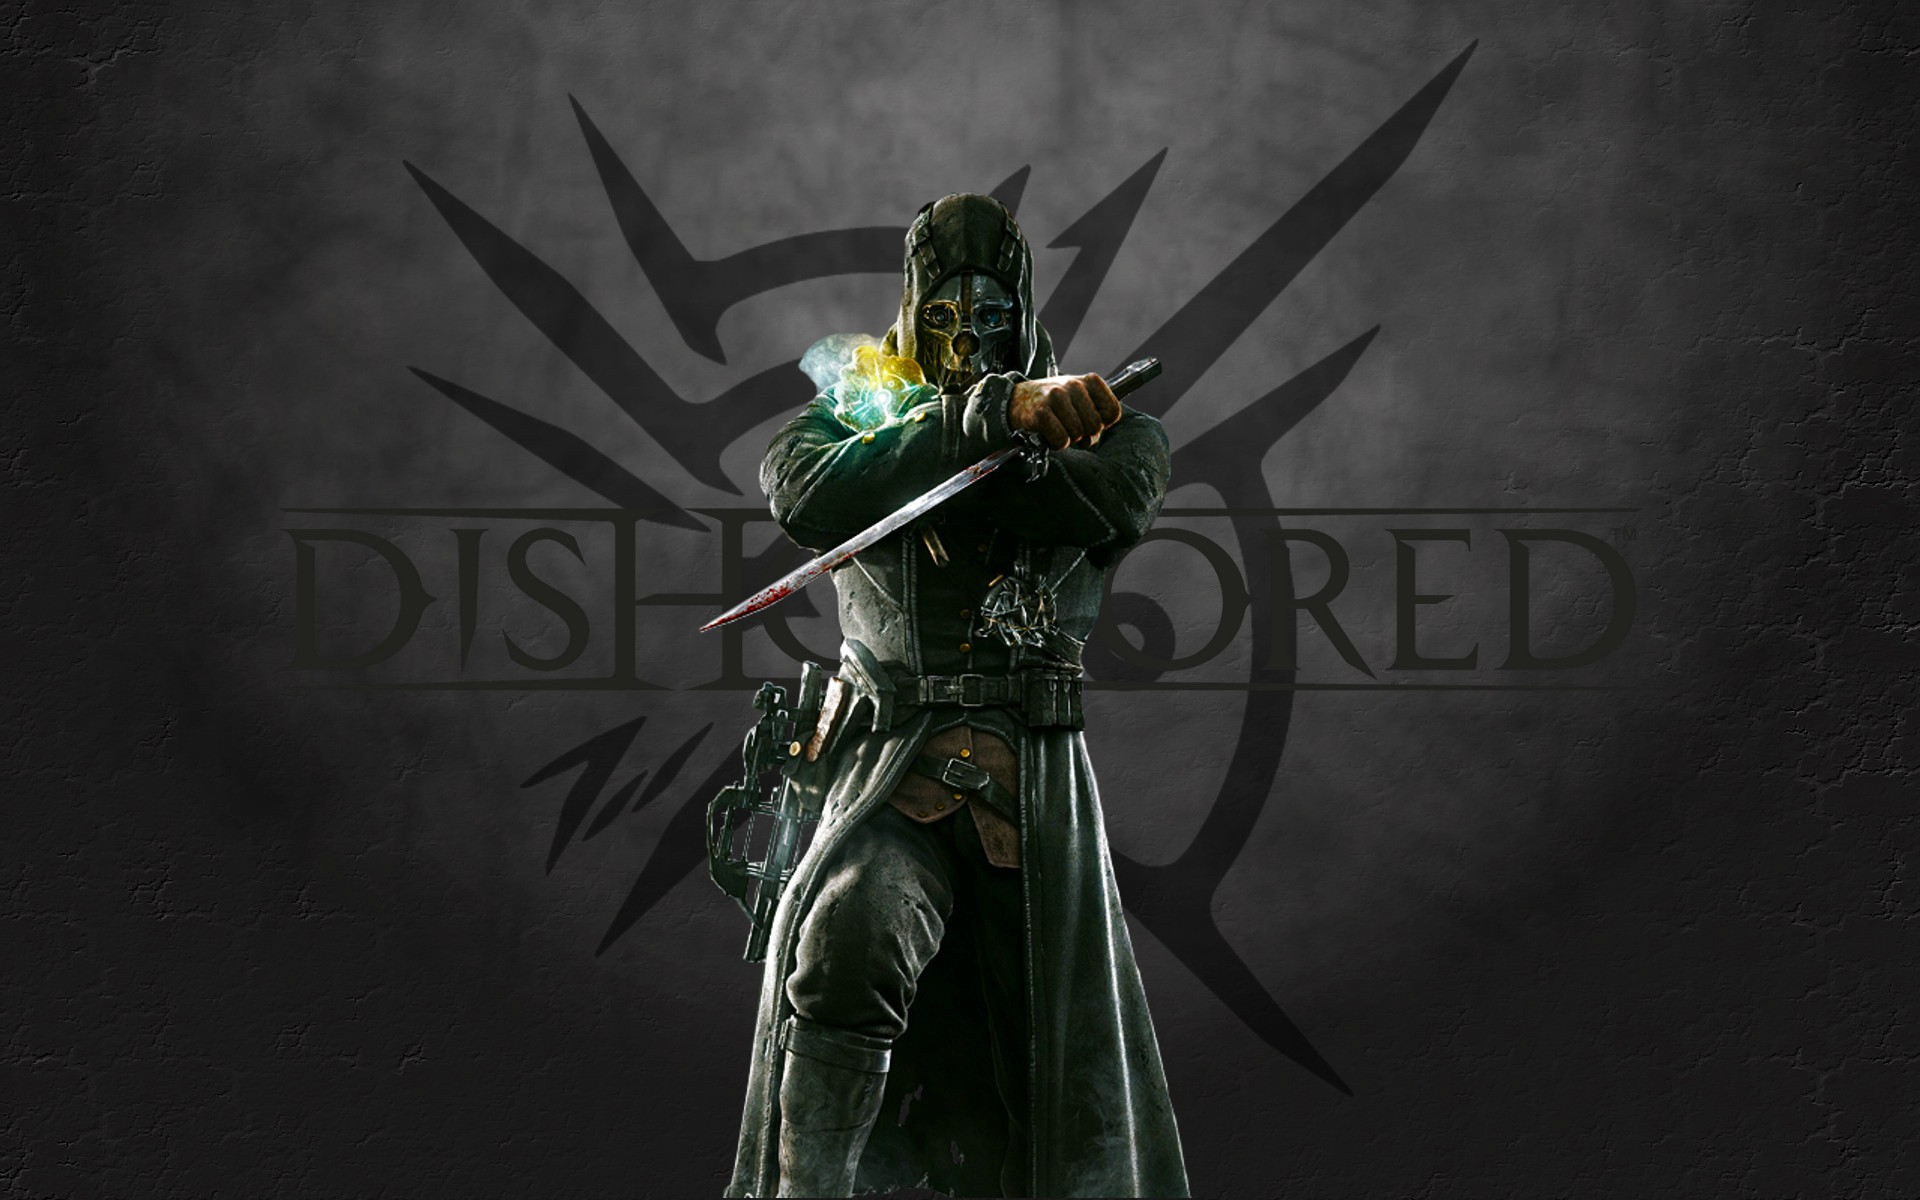 Dishonored Fan Art Corvo Video Games Wallpapers Hd: Dishonored Full HD Wallpaper And Background